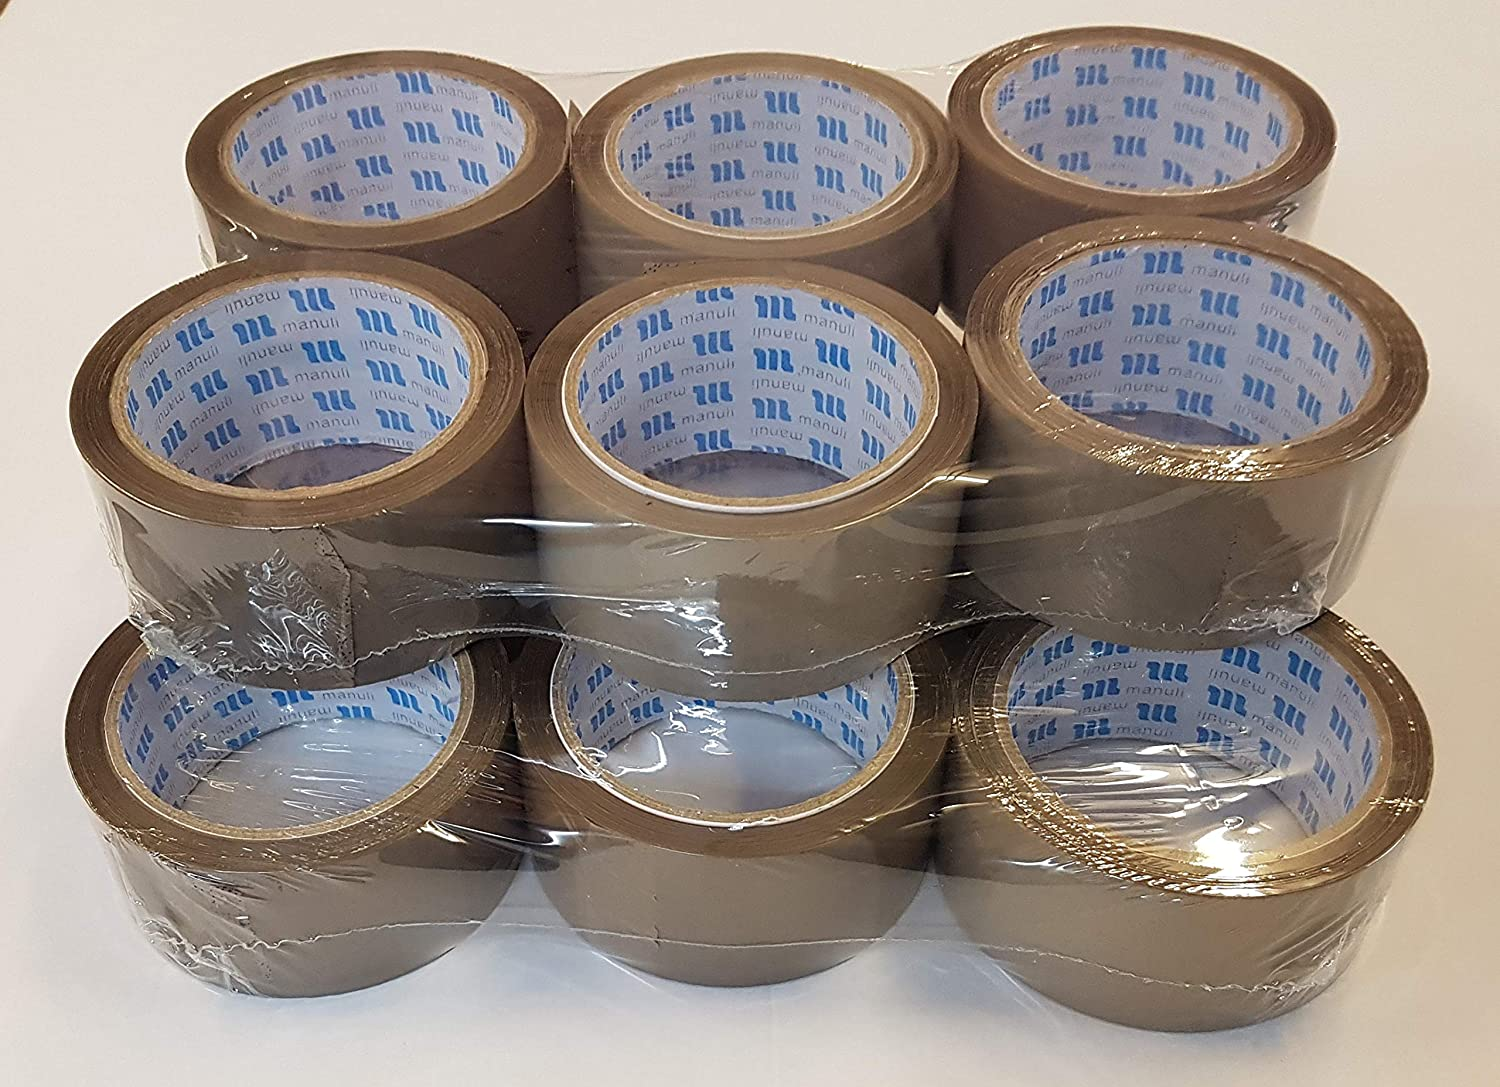 This 12 roll Pack of Standard Duty Brown Packing Tape Provides a Strong Secure and Sticky Seal for Your Boxes MANULI Brown Packaging Tape for Parcels and Boxes 12 Rolls 48MM x 66M